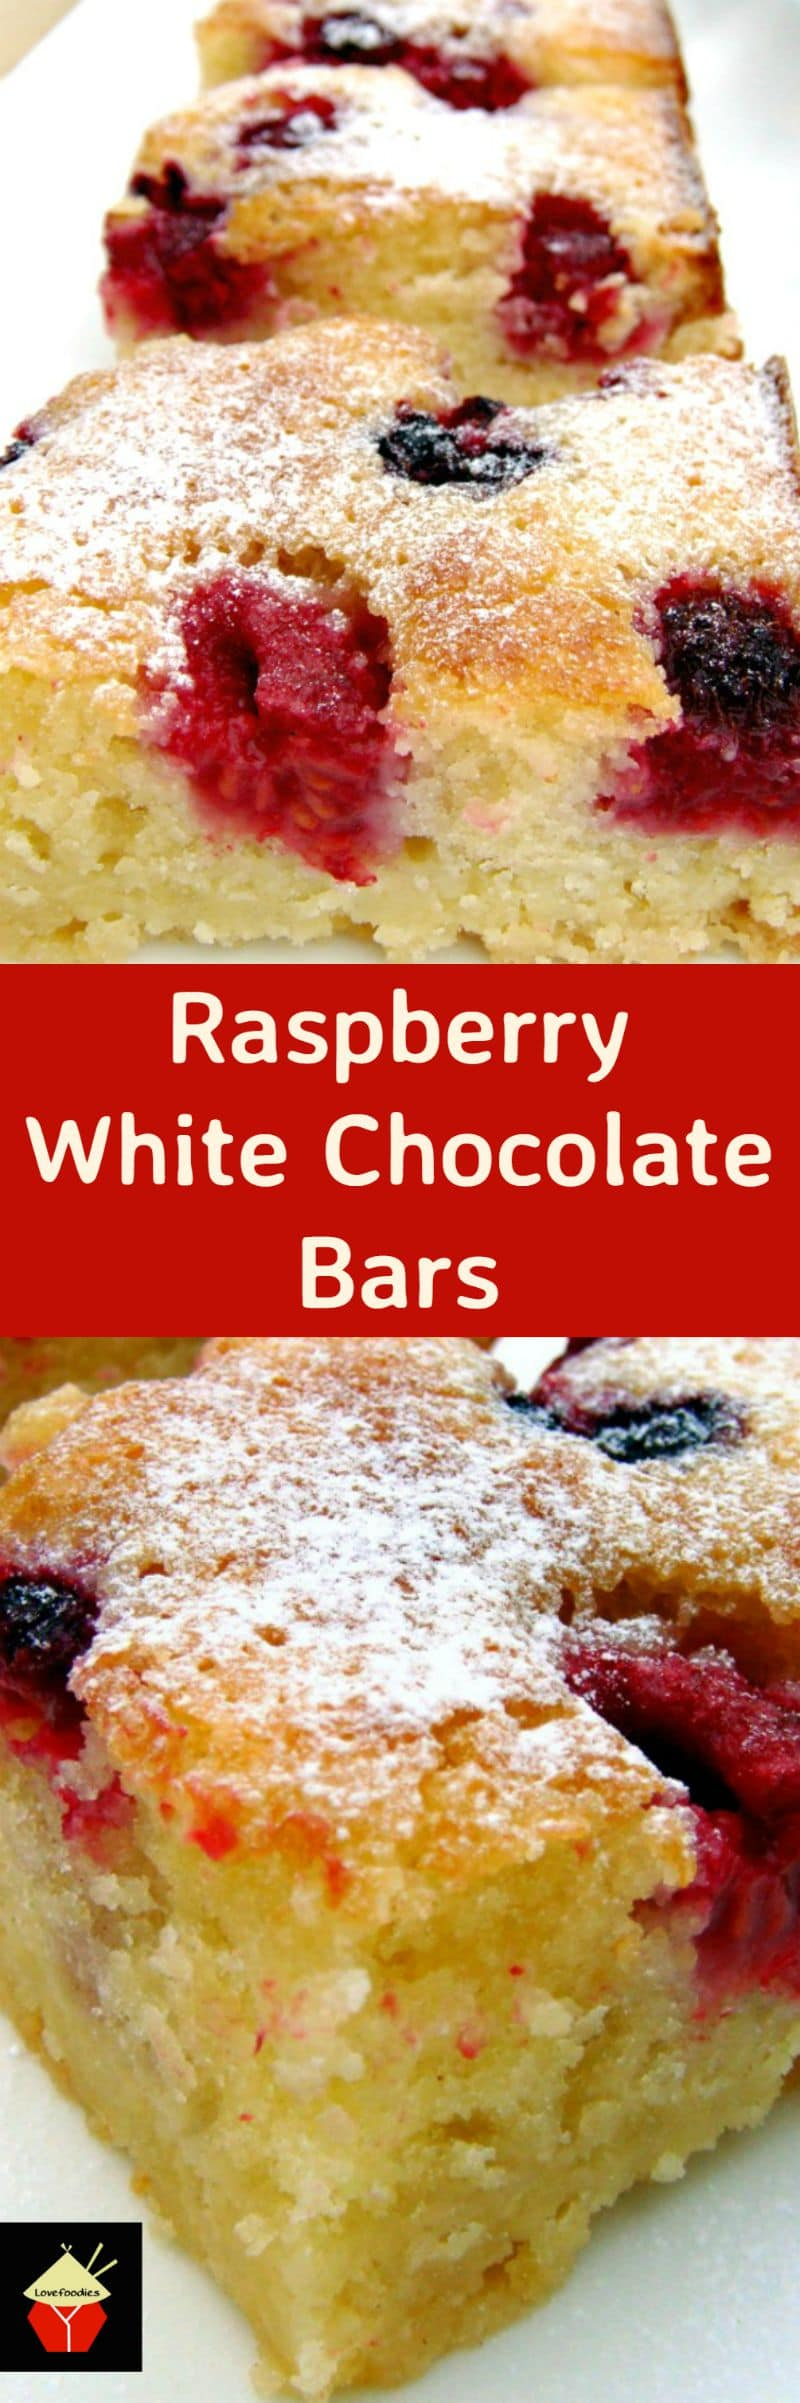 Raspberry and White Chocolate Bars. A delicious and easy recipe, perfect with a nice cup of tea! | Lovefoodies.com